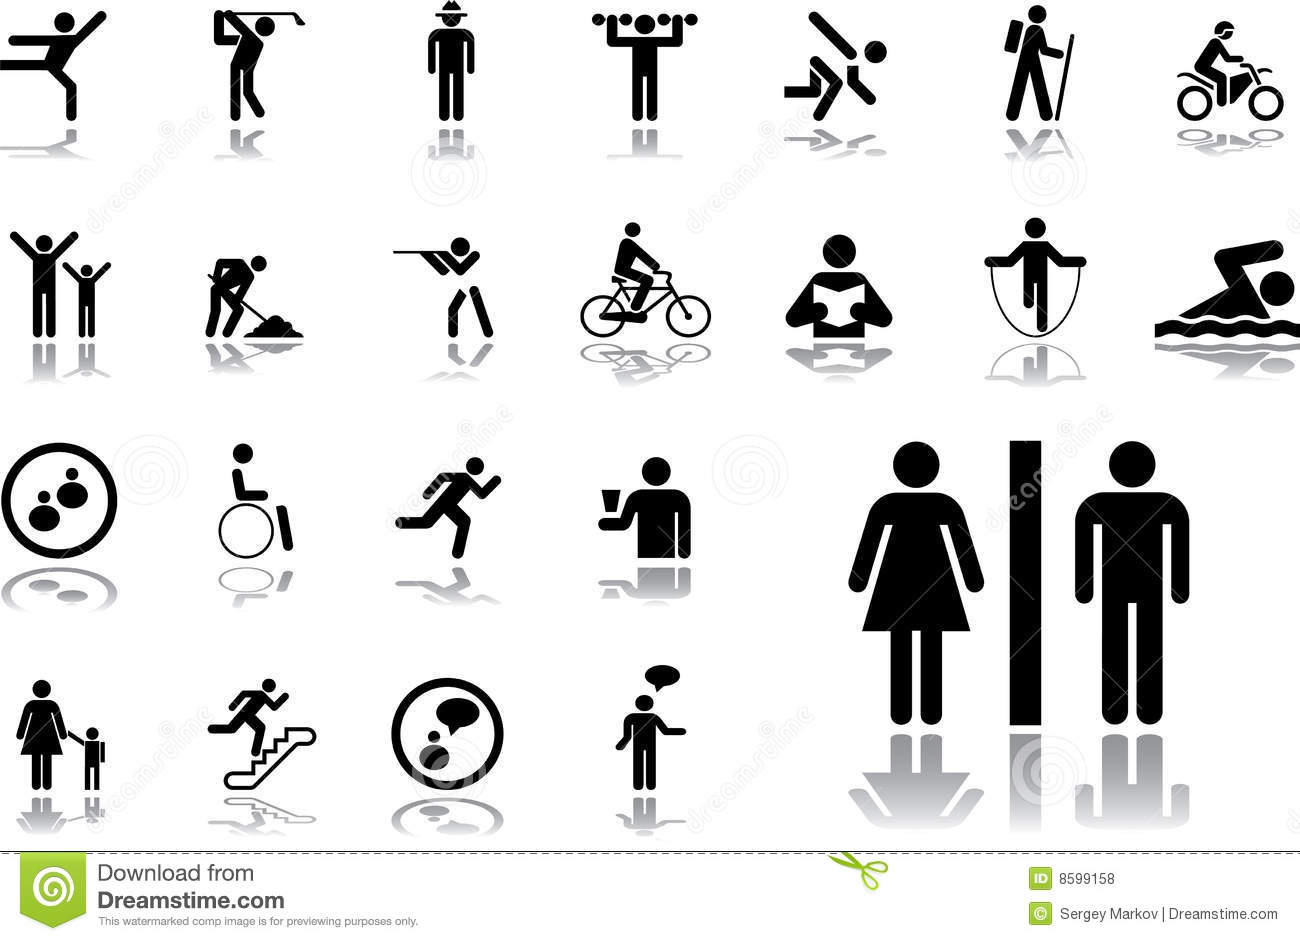 19 Pictographs Of People Royalty Free Stock Photos